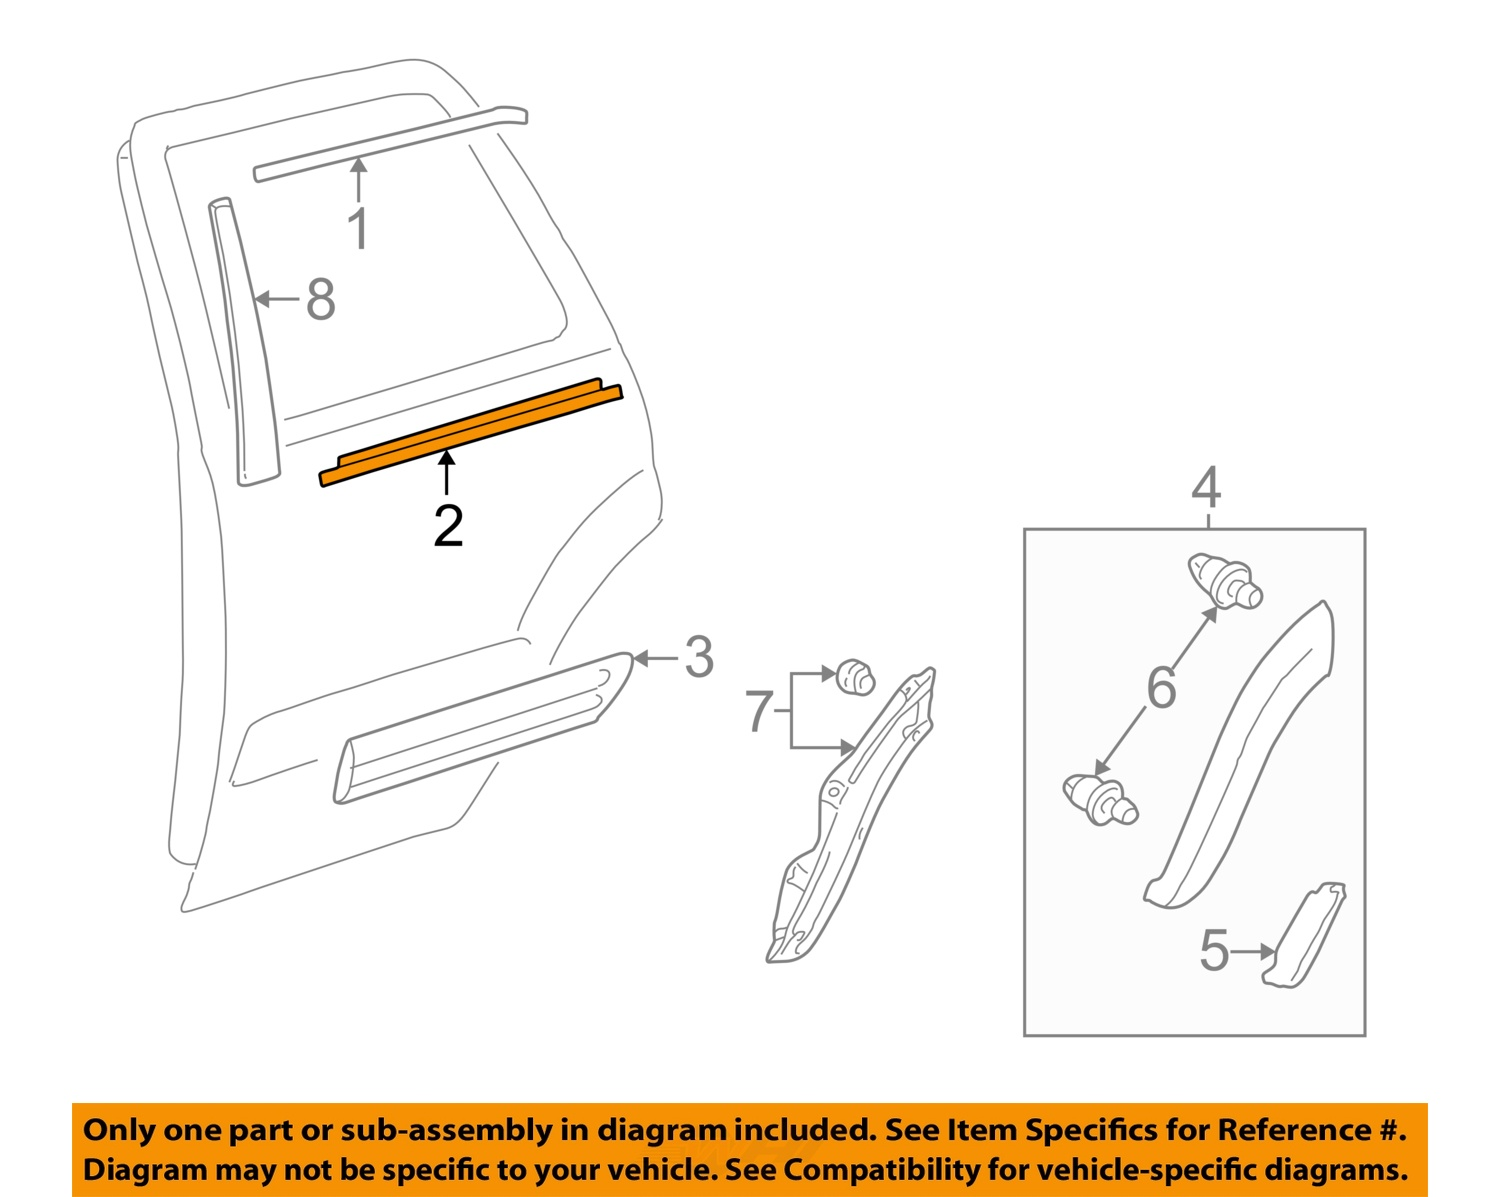 2003 toyota sequoia parts diagram human eye simple oem rear window door belt molding